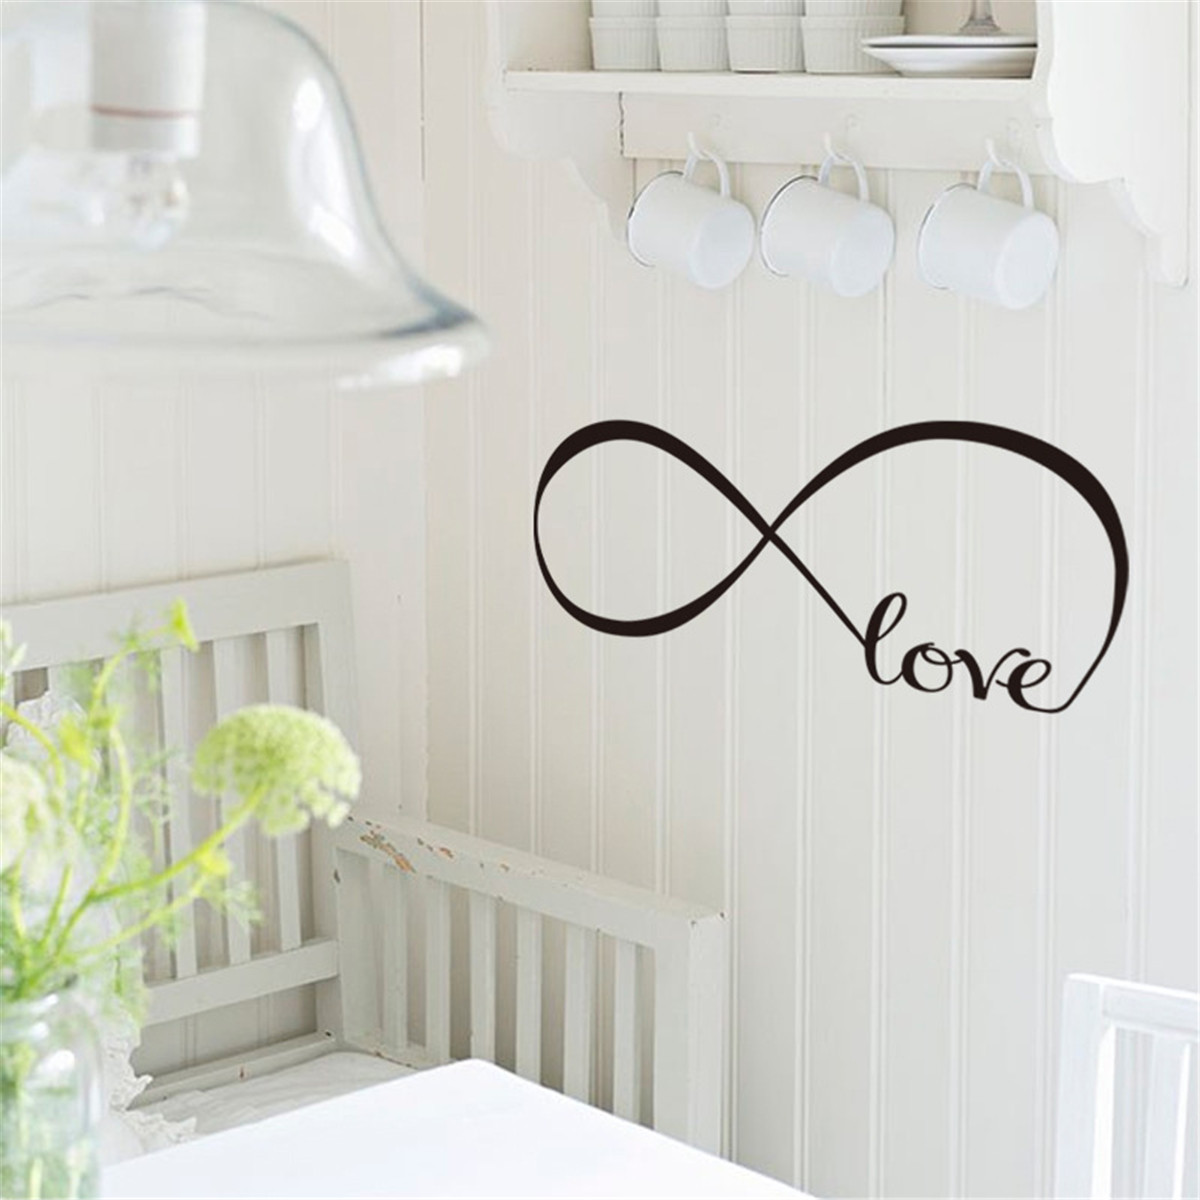 S/M/L Love PVC Wall Stickers DIY Removable Self Adhesive Art Decal Decoration